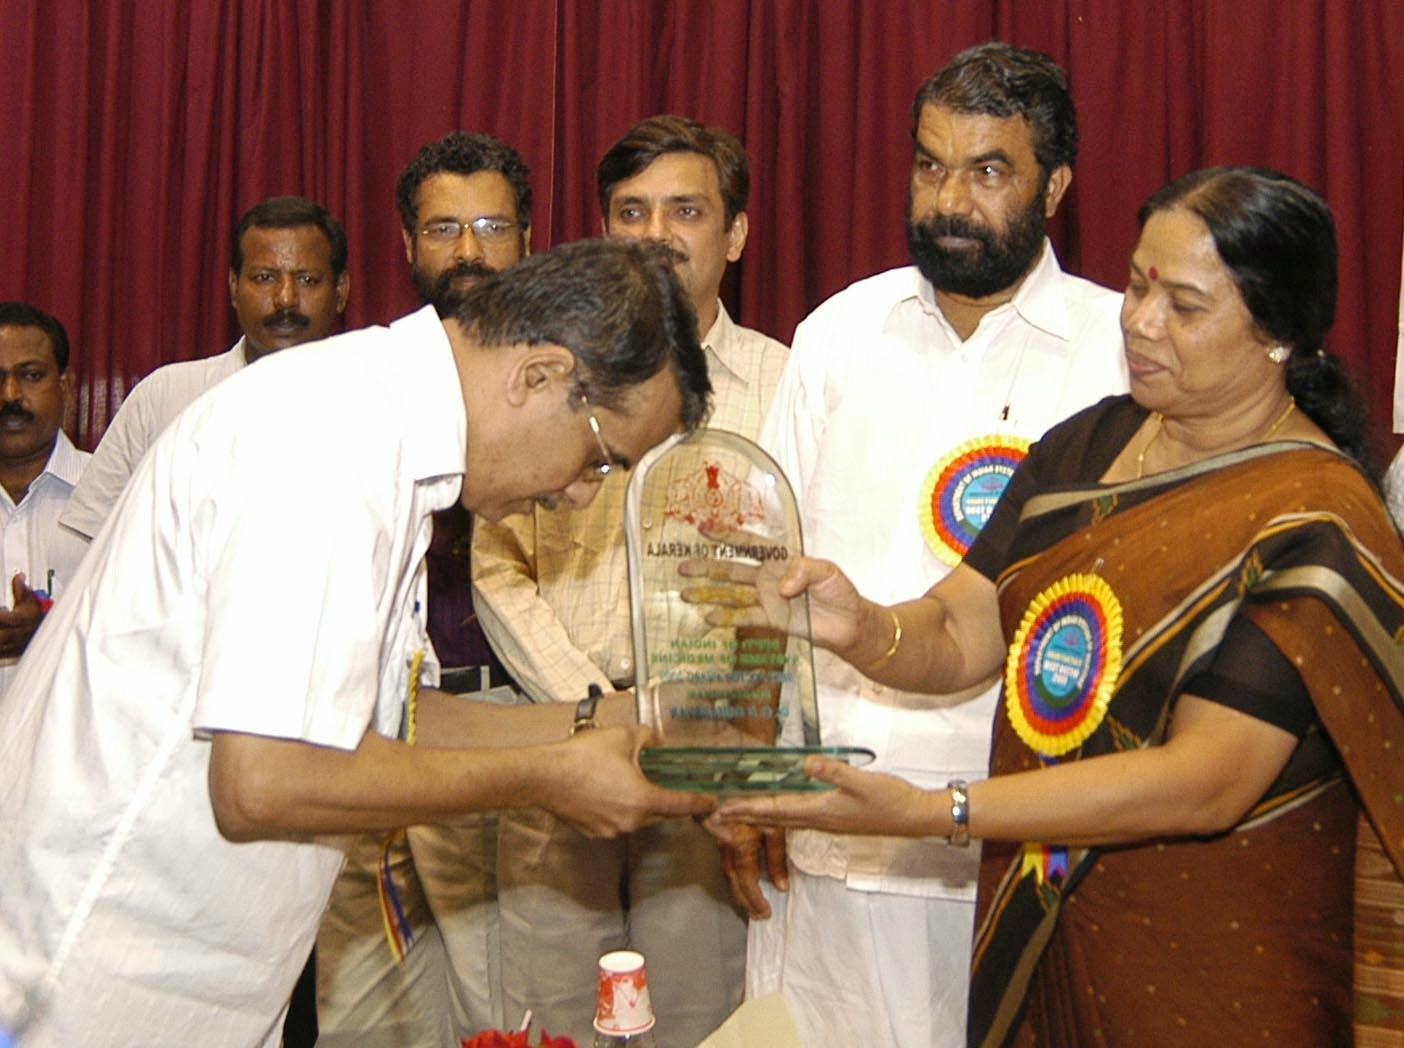 The Bhishak Ratna Award is bagged by D. D. Sahadevan